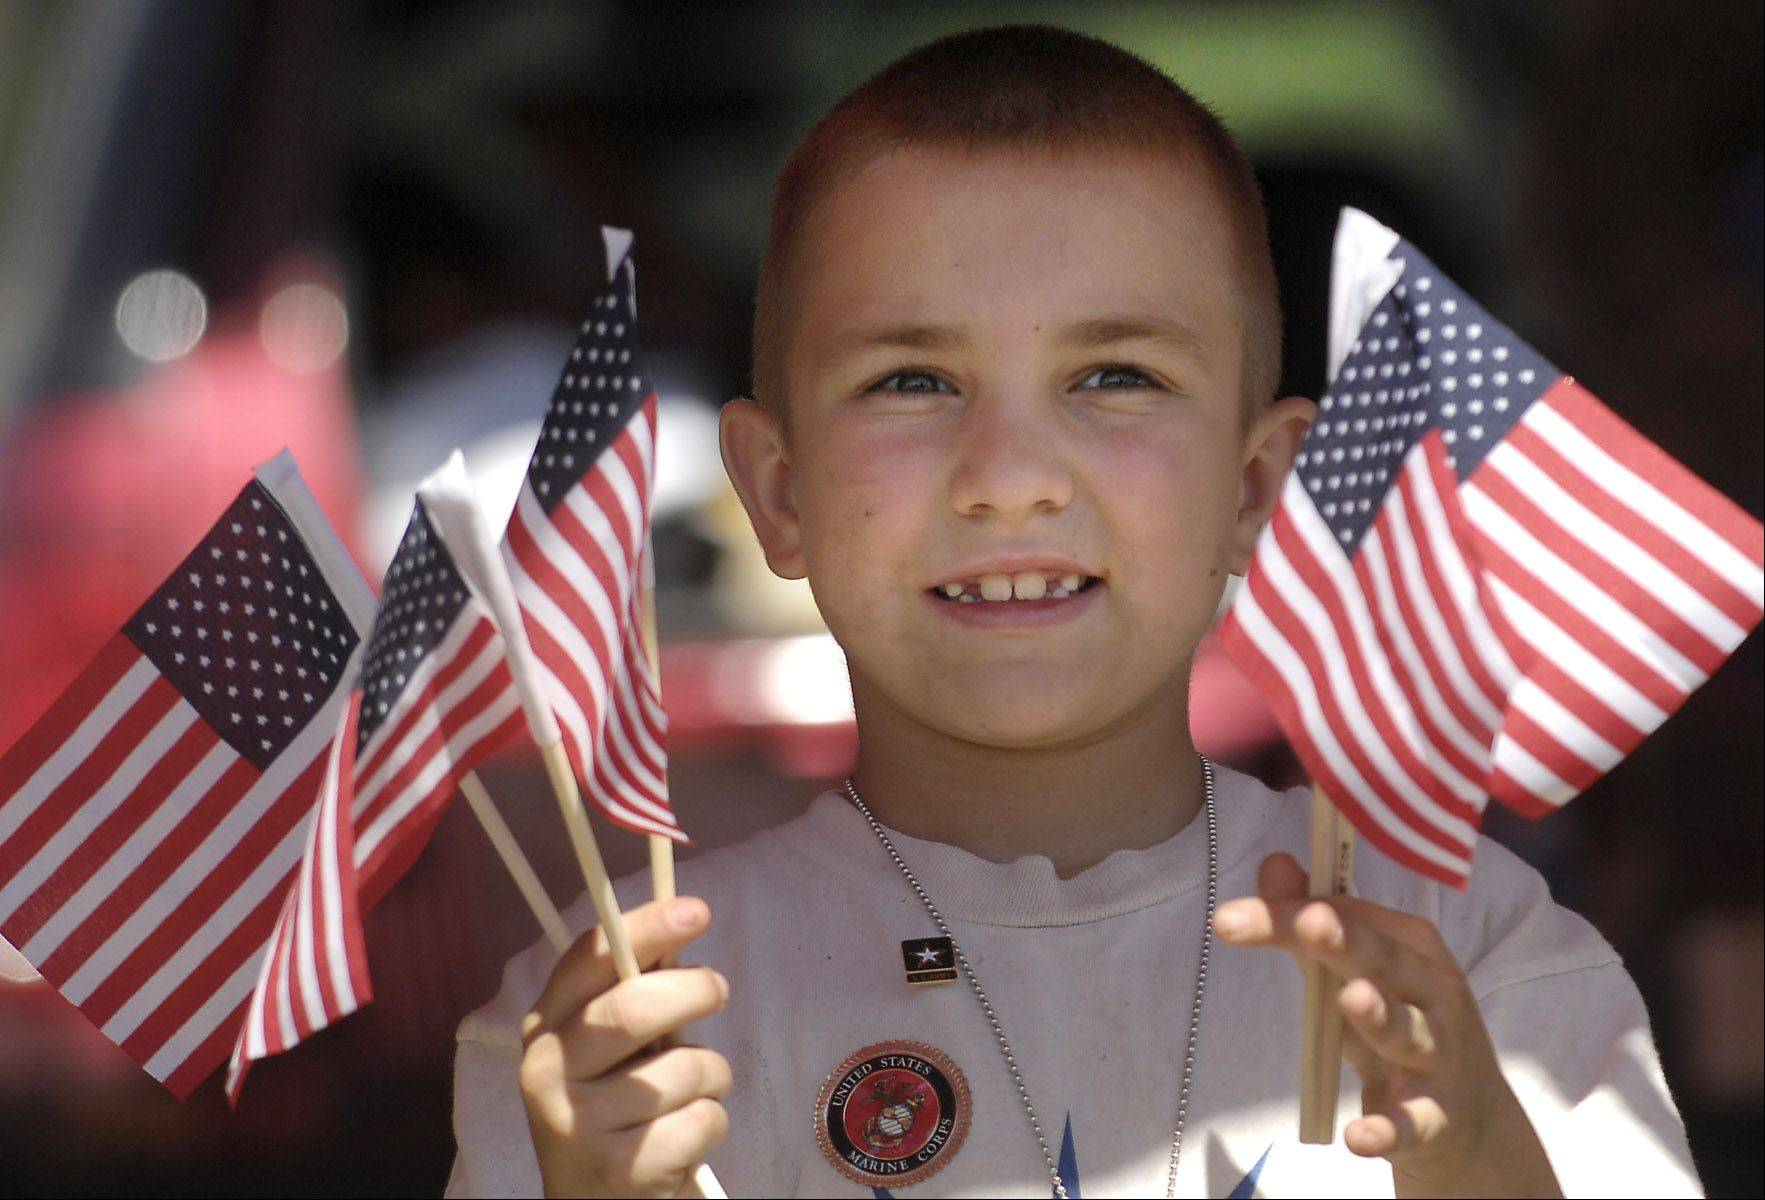 Justin Gulas, 7, of Wonder Lake hands out flags at Barrington's fourth annual Freedom Festival in 2007.